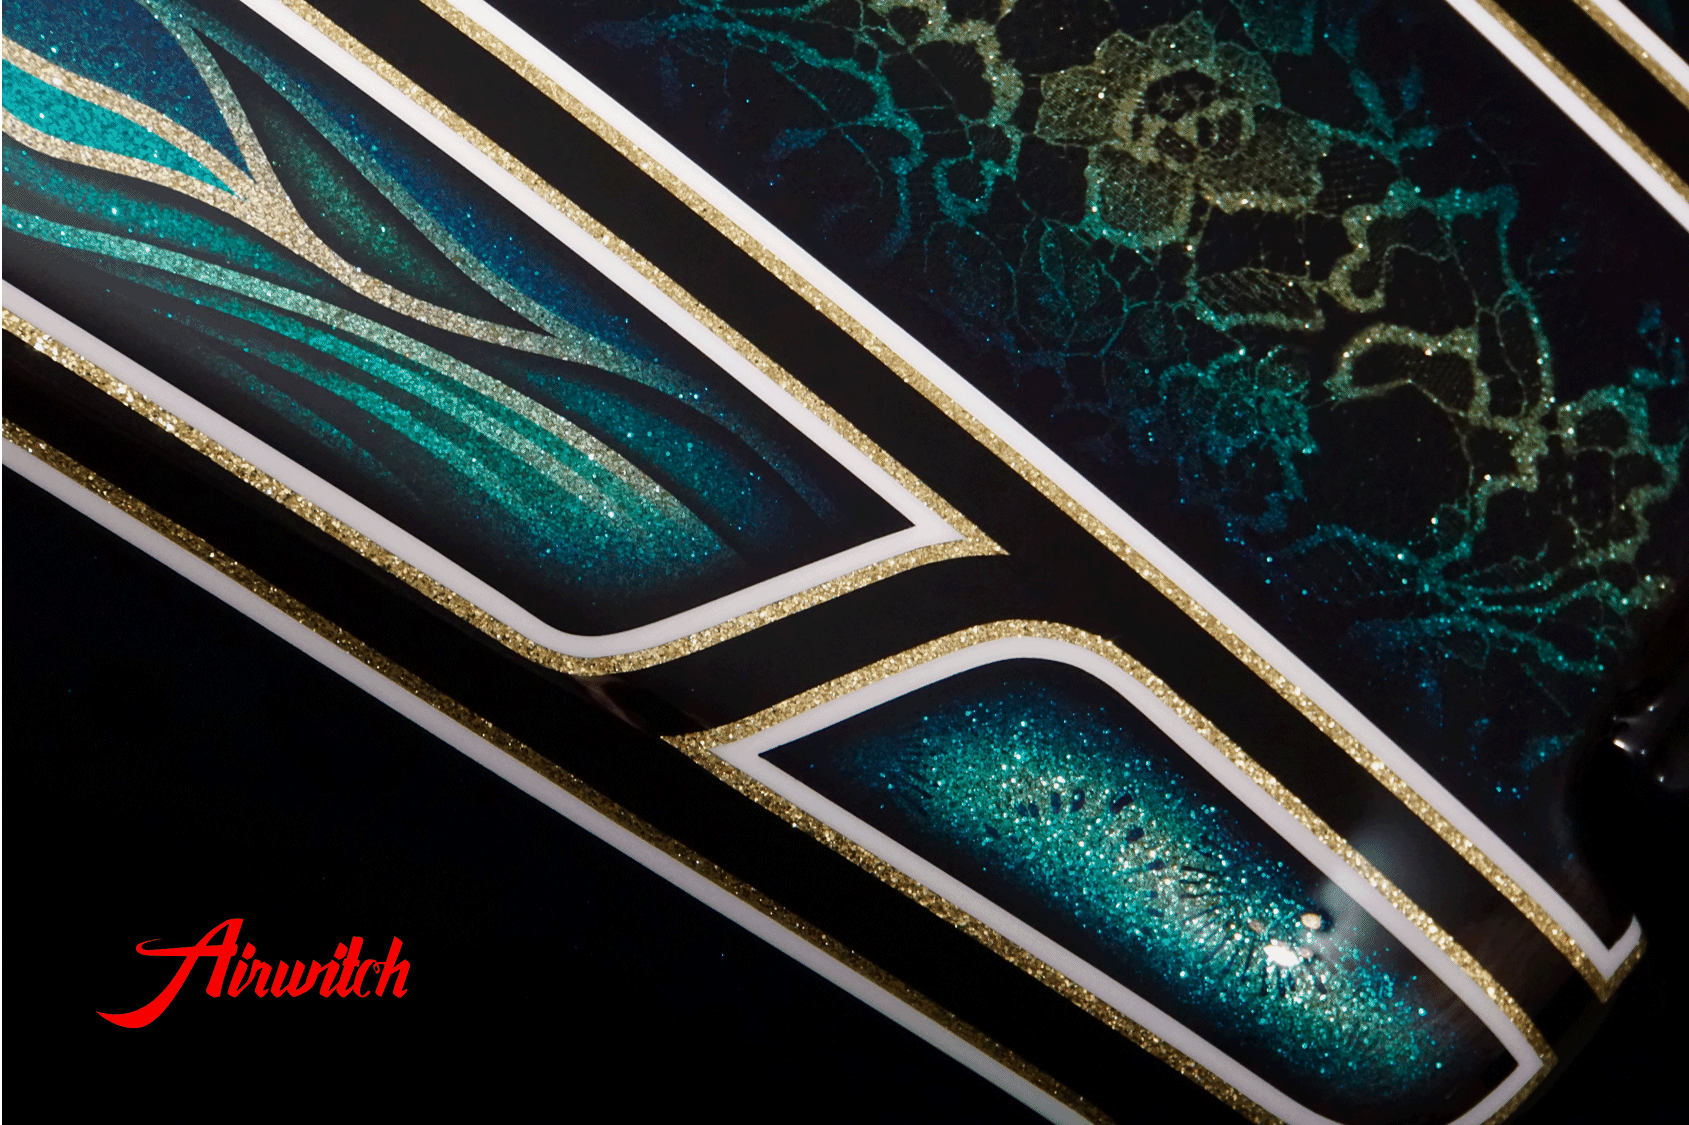 Custom Paint Harley Davidson Softail Metalflake Lackierung with oldschool frisco pattern blue turquoise gold black